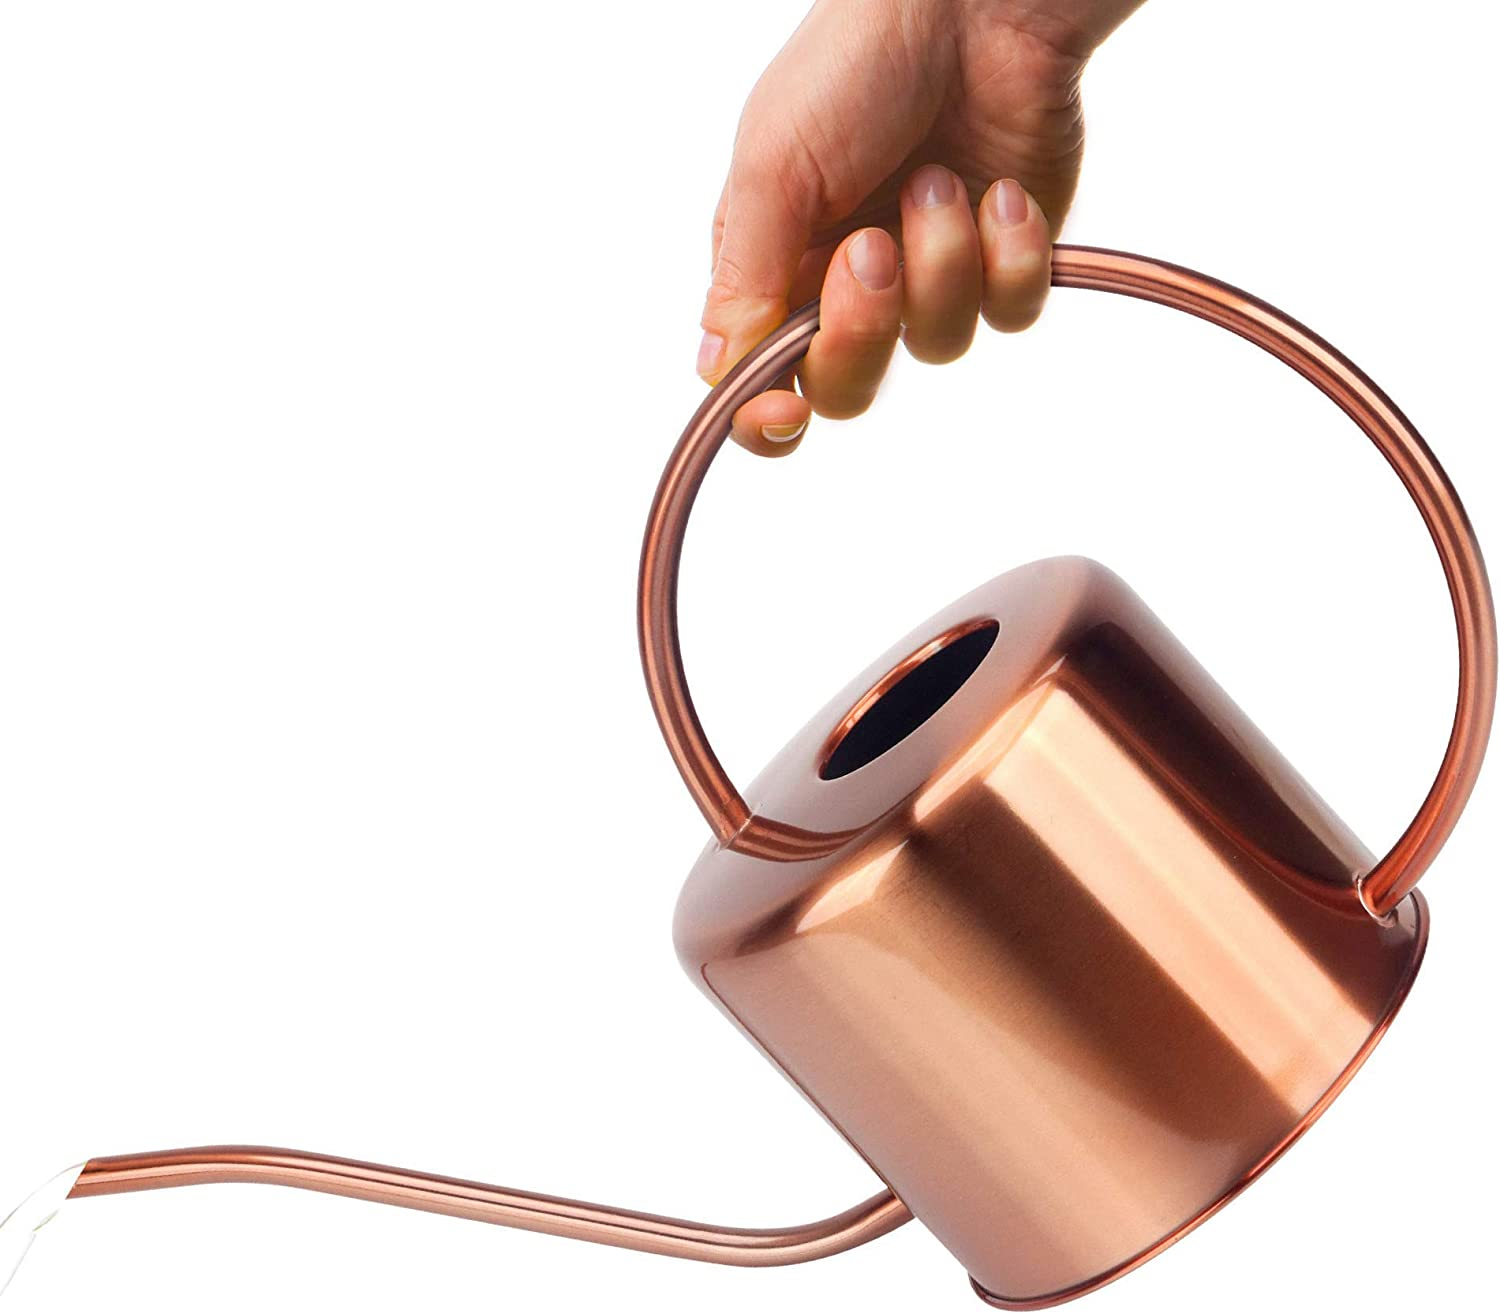 KIBAGA Decorative Copper Colored 40oz Watering Can - Easy Pour Gooseneck Spout for Fast and Easy Indoor Plant Watering